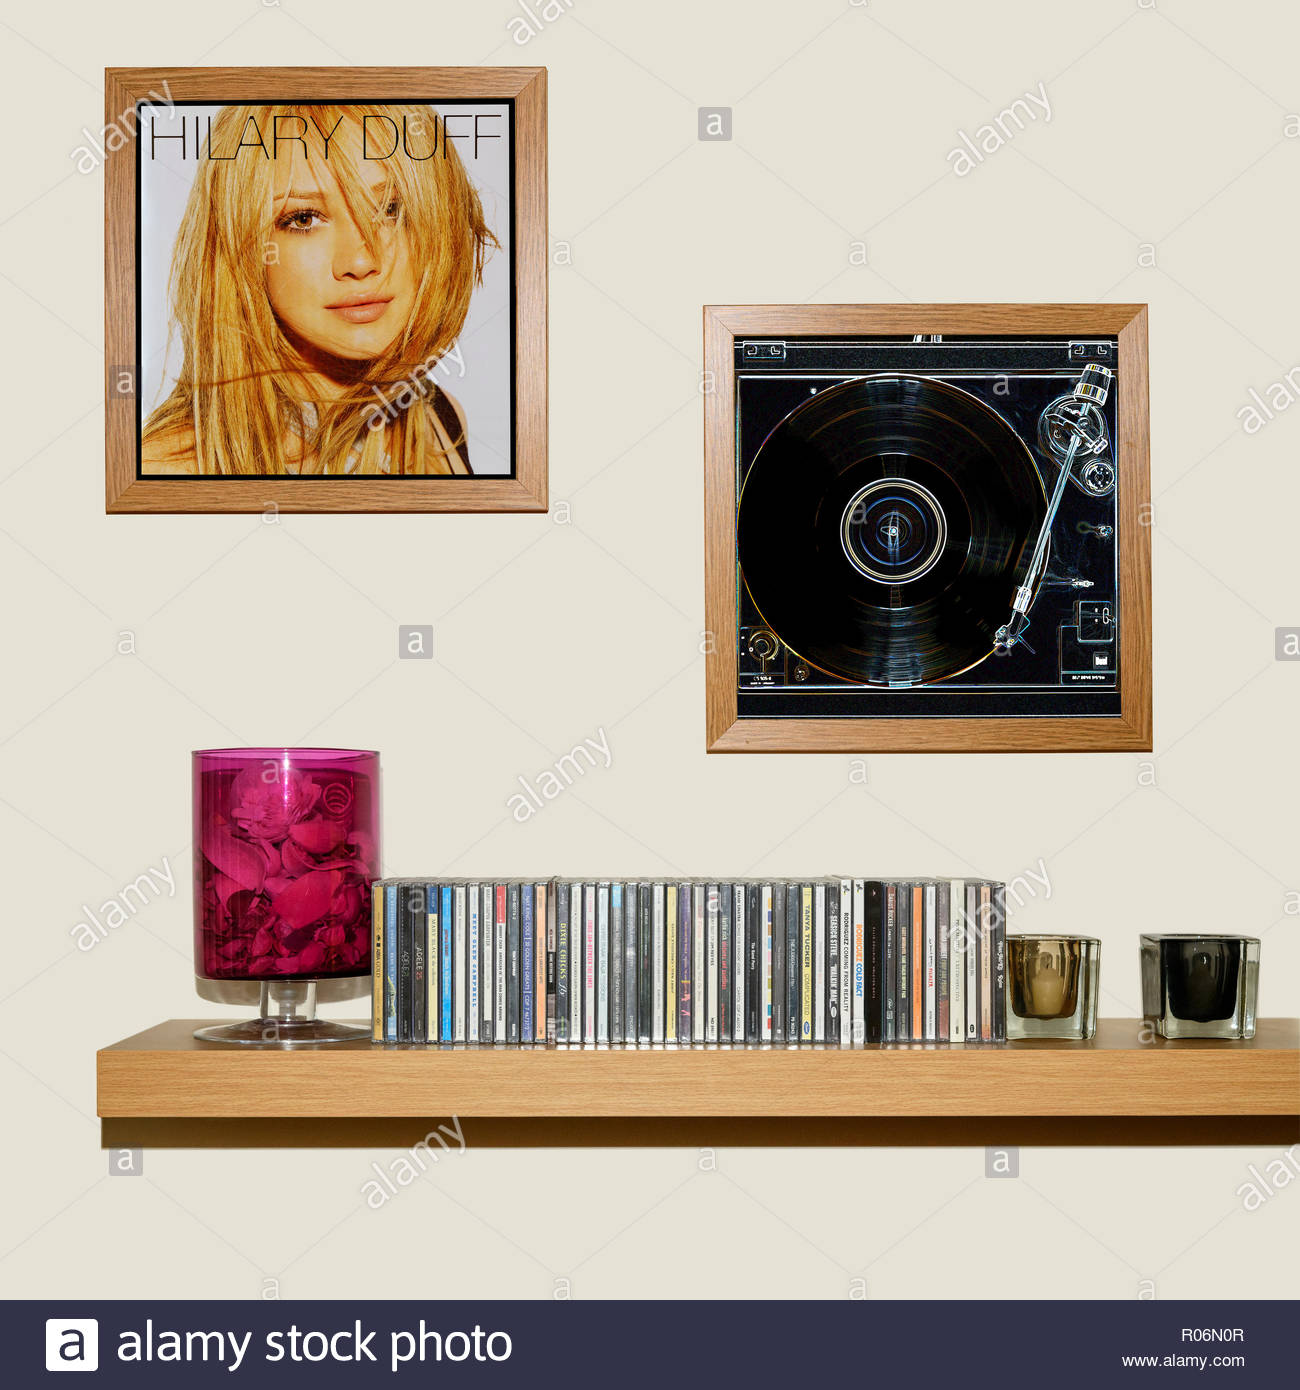 CD Collection and framed Hilary Duff  2004 eponymous album, England - Stock Image